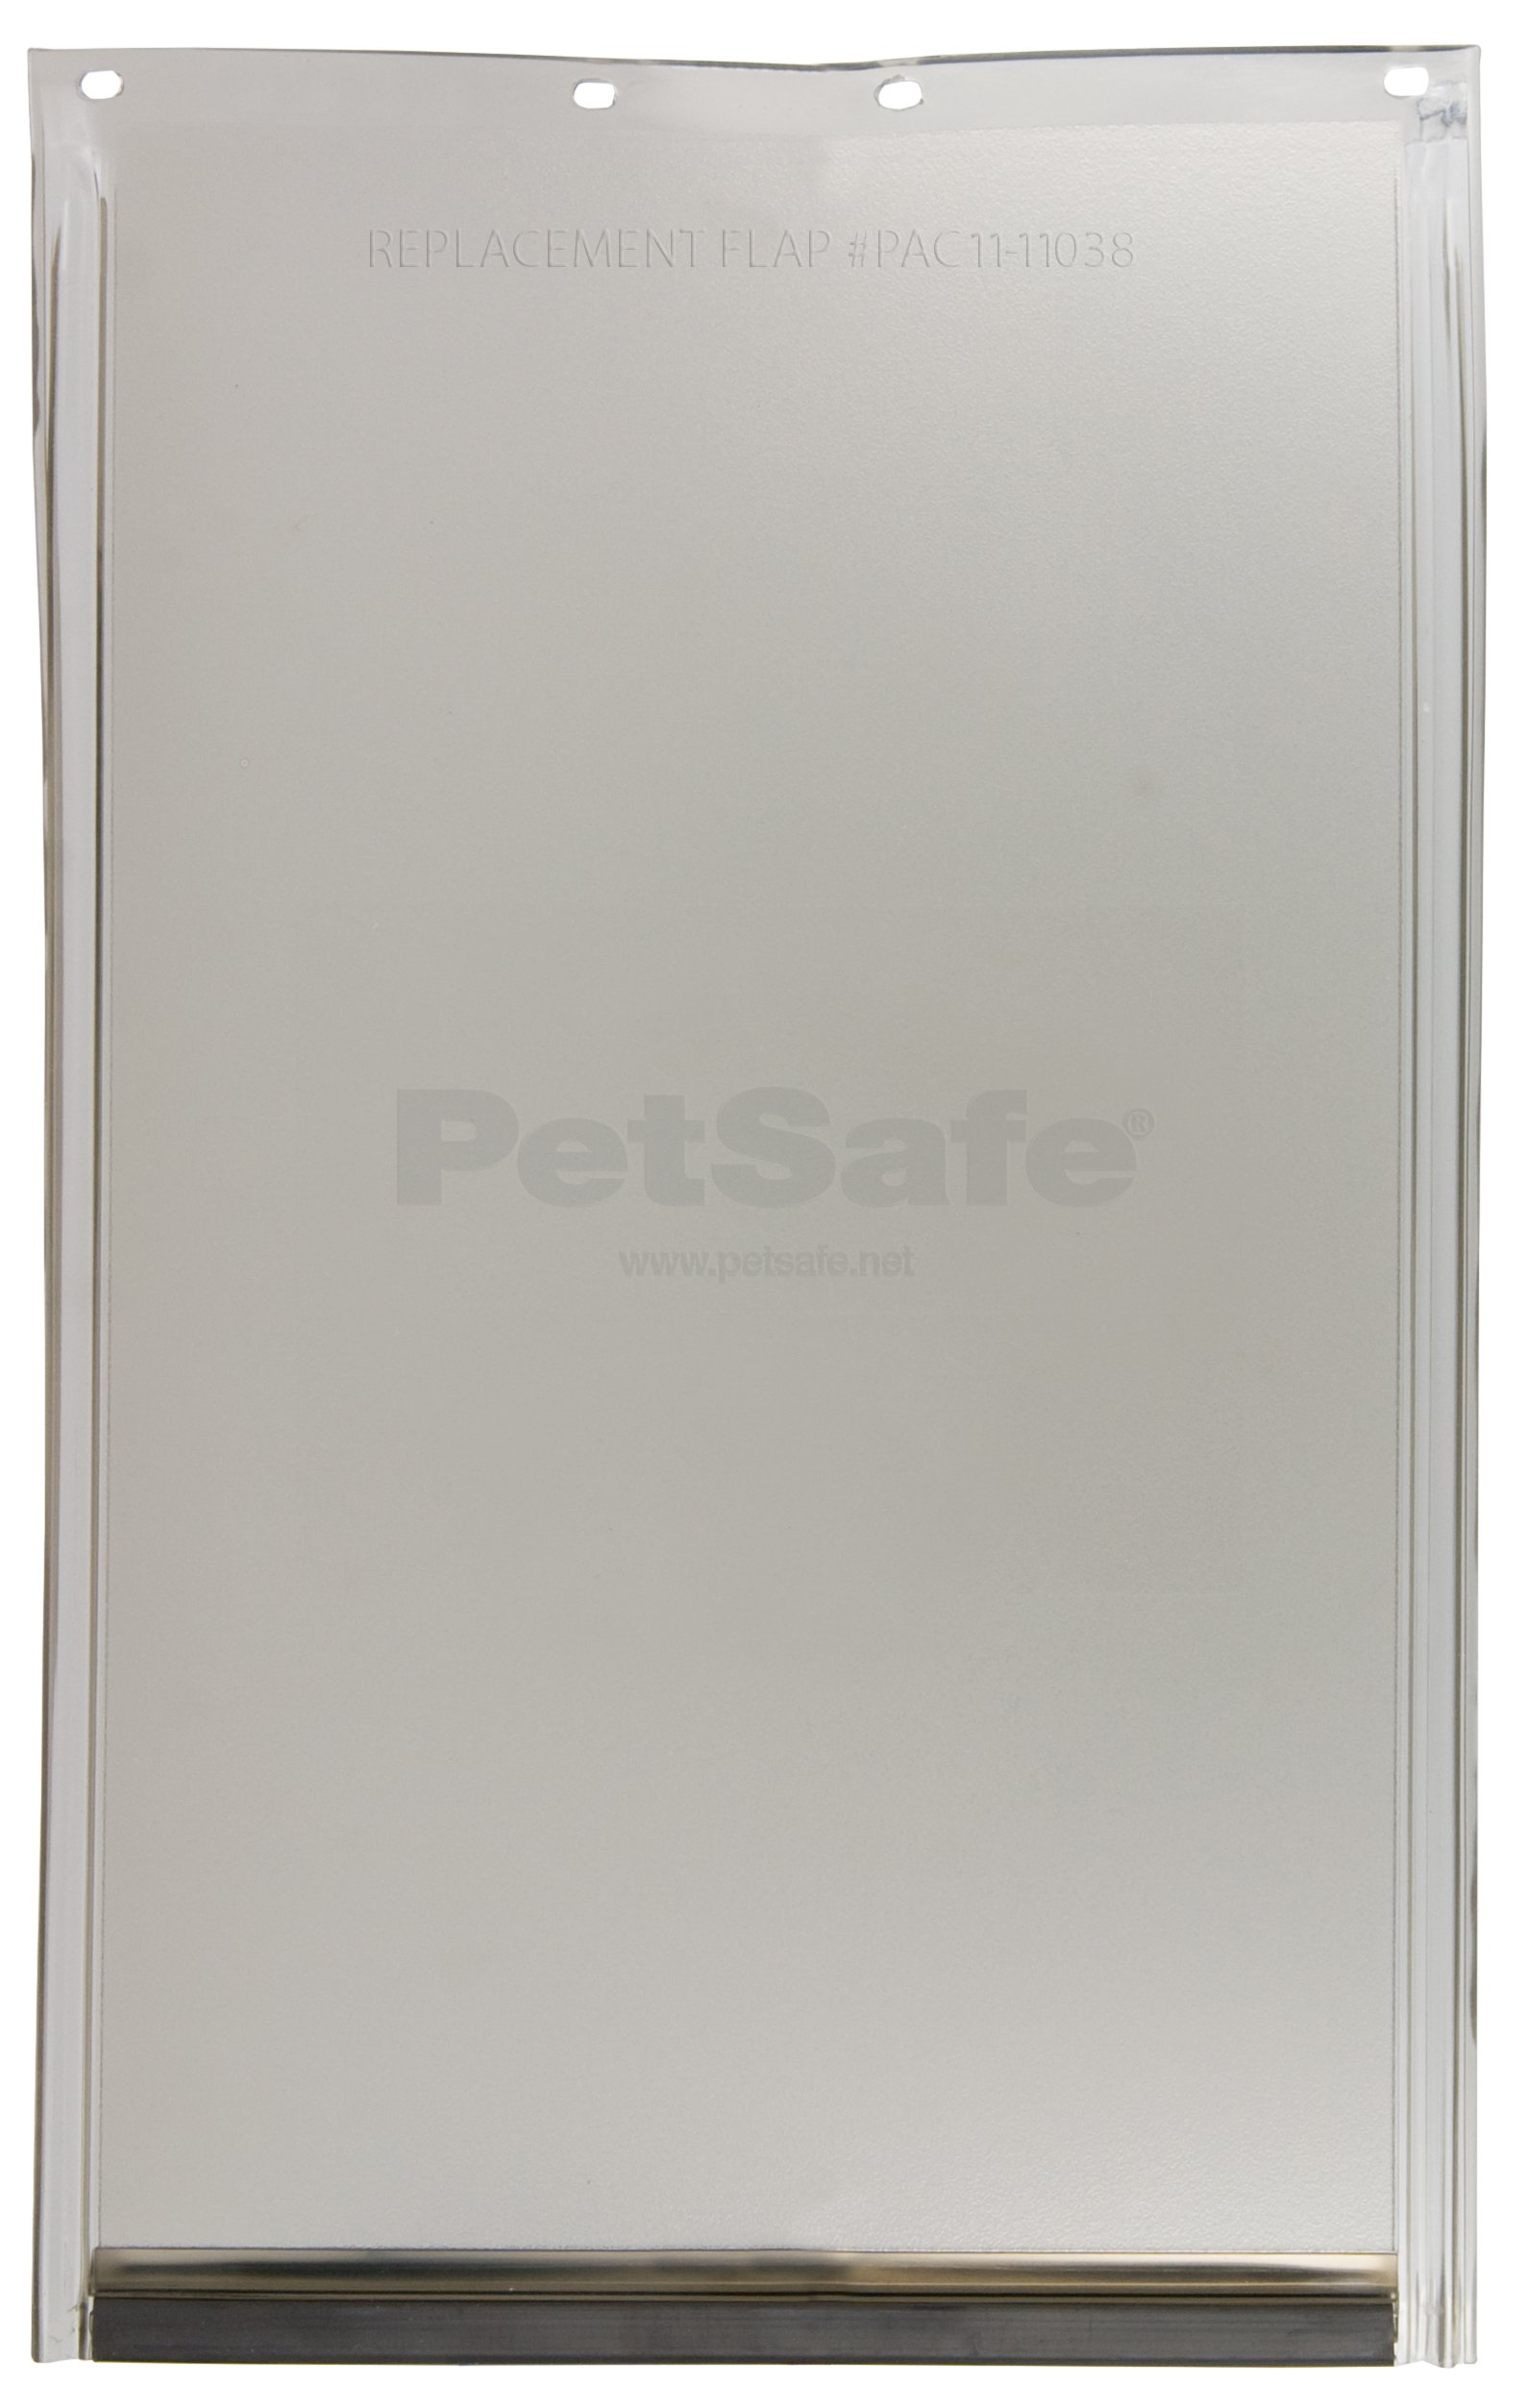 PetSafe Dog and Cat Door Replacement Flap, Medium, 8 1/8'' x 12 7/8'', PAC11-11038, Tinted Vinyl, Magnetic